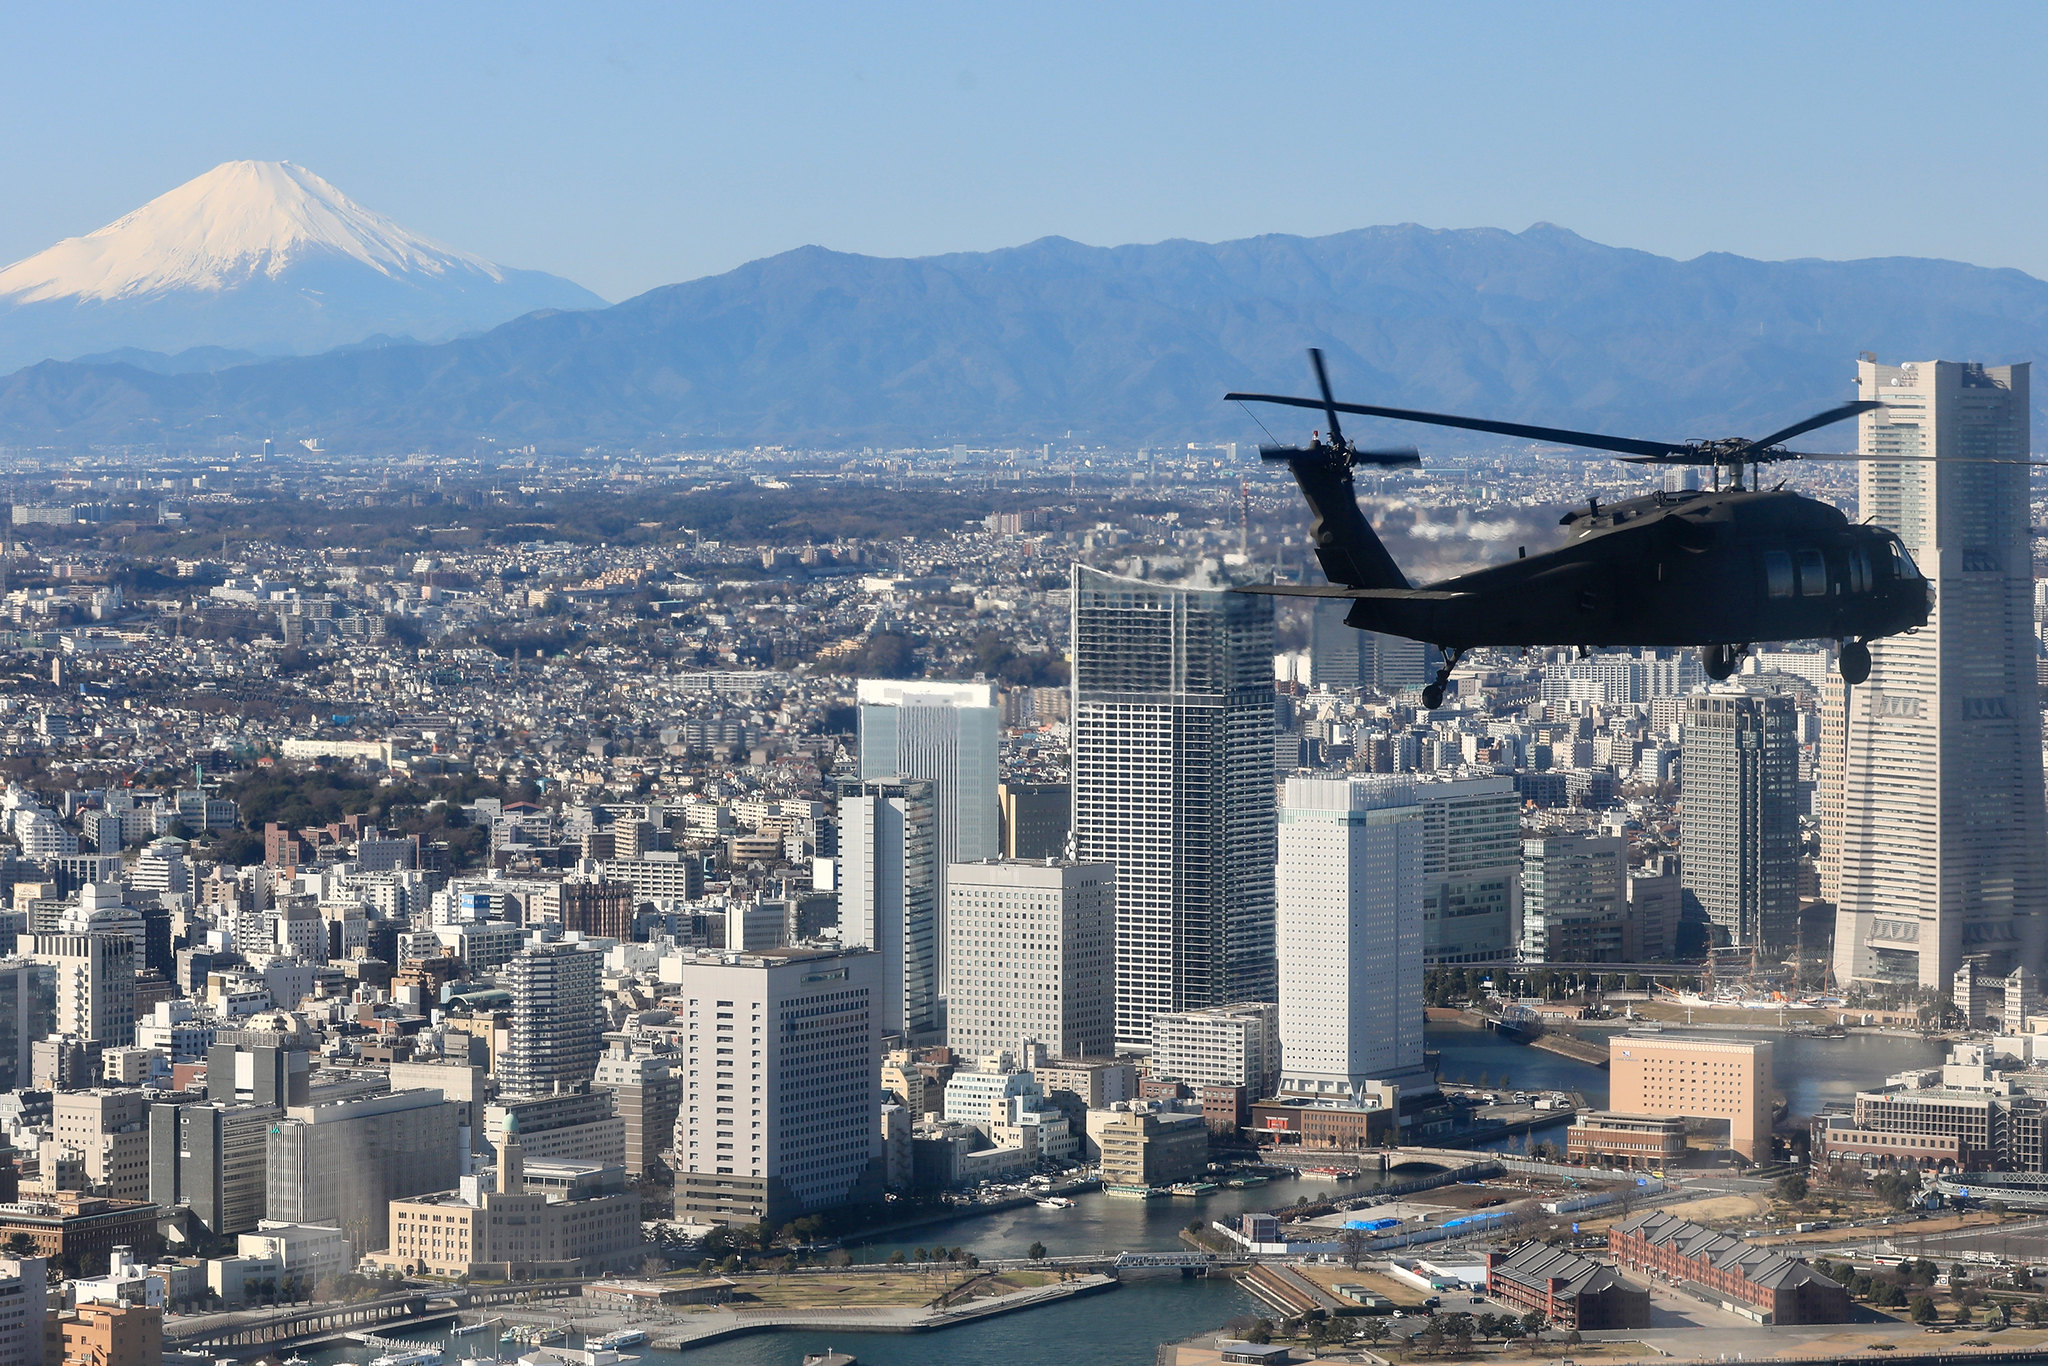 Soldiers with U.S. Army Aviation Battalion Japan soar the skies in a UH-60 Black Hawk Helicopter during a joint training exercise with Japan Ground Self-Defense Force members to rehearse tactical flight operations at Camp Zama, Japan, Jan. 9, 2020. (Sgt. Raquel Villalona/Army)